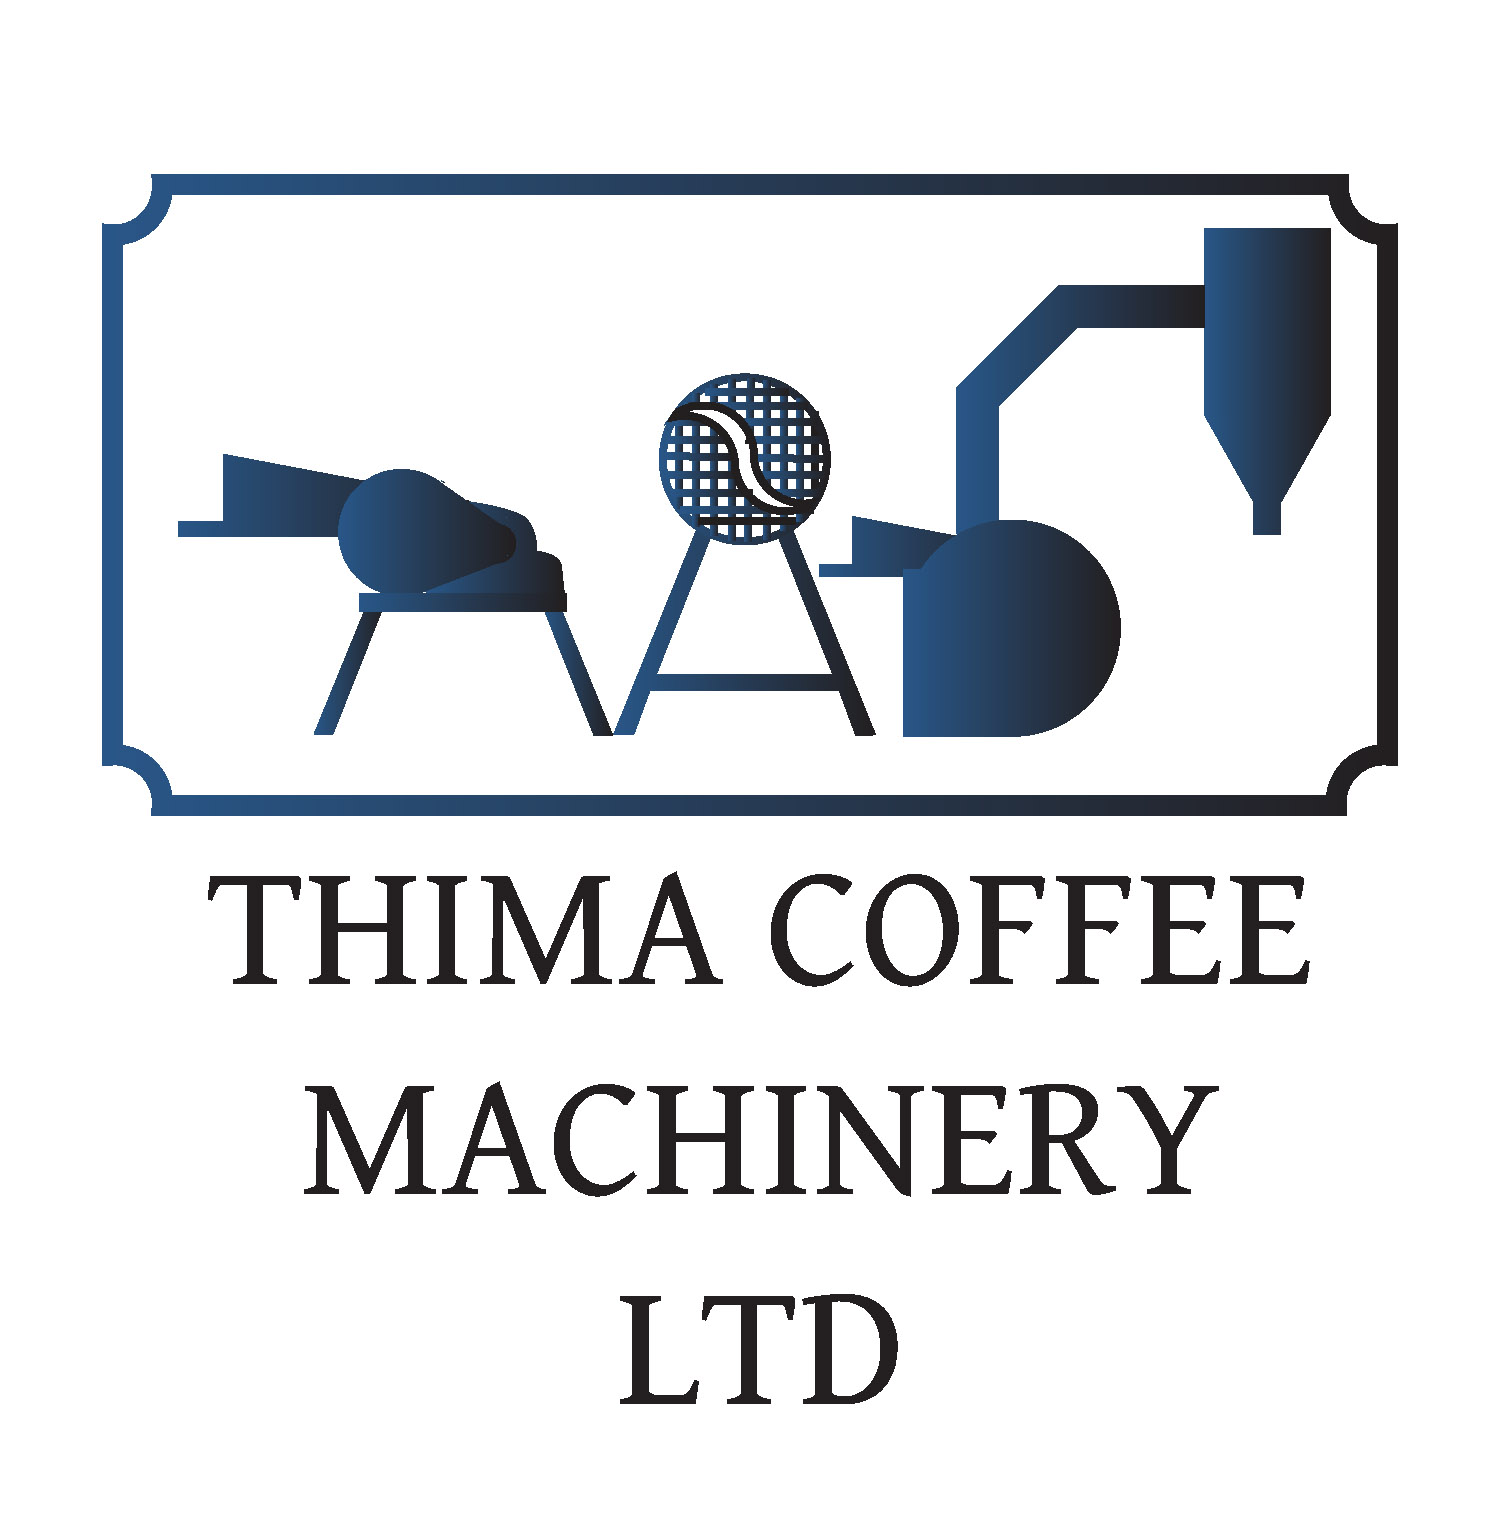 Thima Coffee Machinery